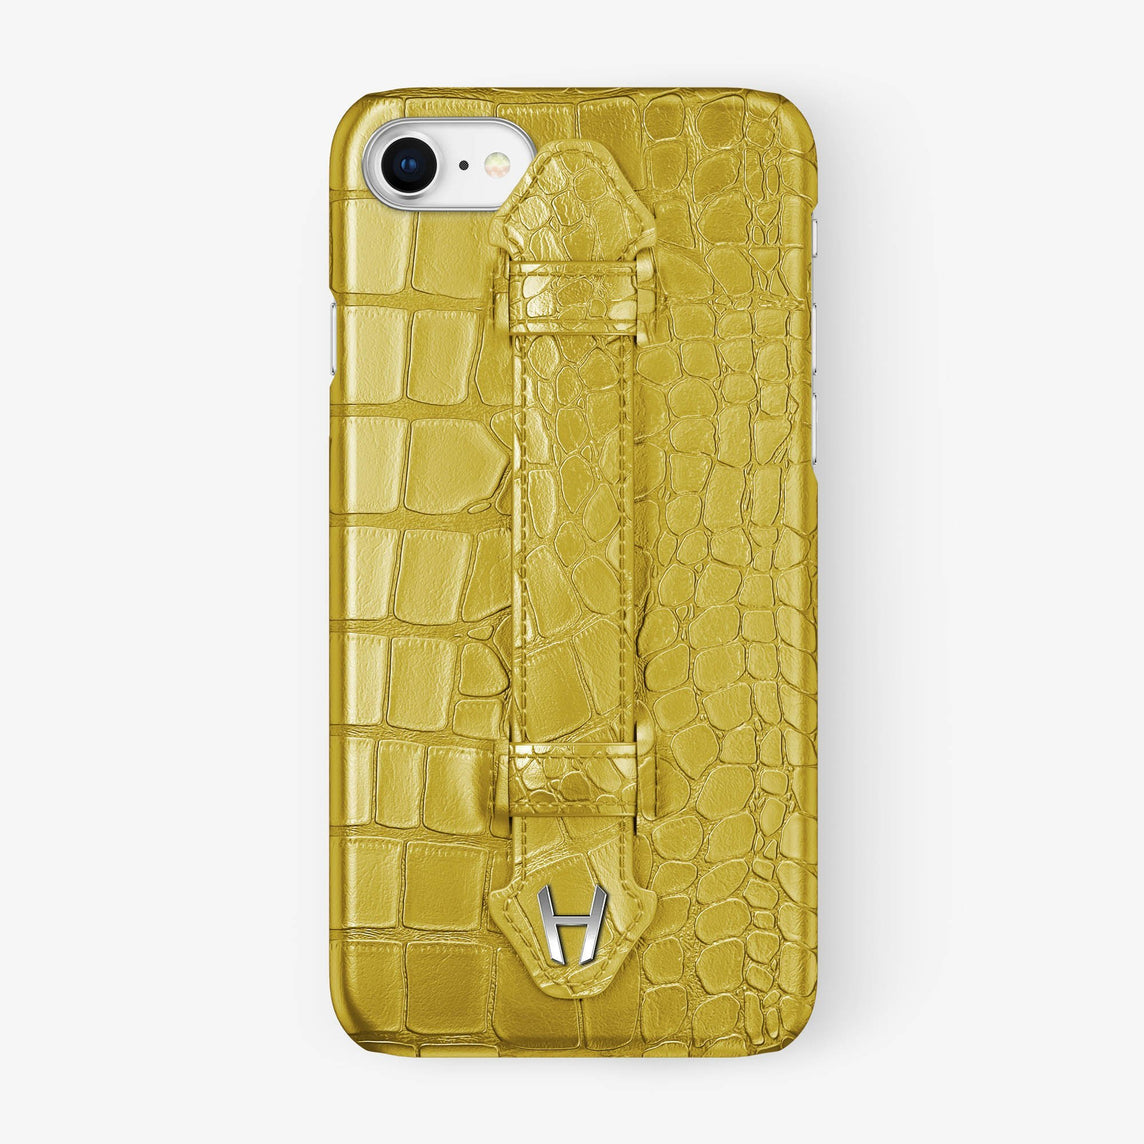 Yellow Alligator iPhone Finger Case for iPhone 7/8 finishing stainless steel - Hadoro Luxury Cases